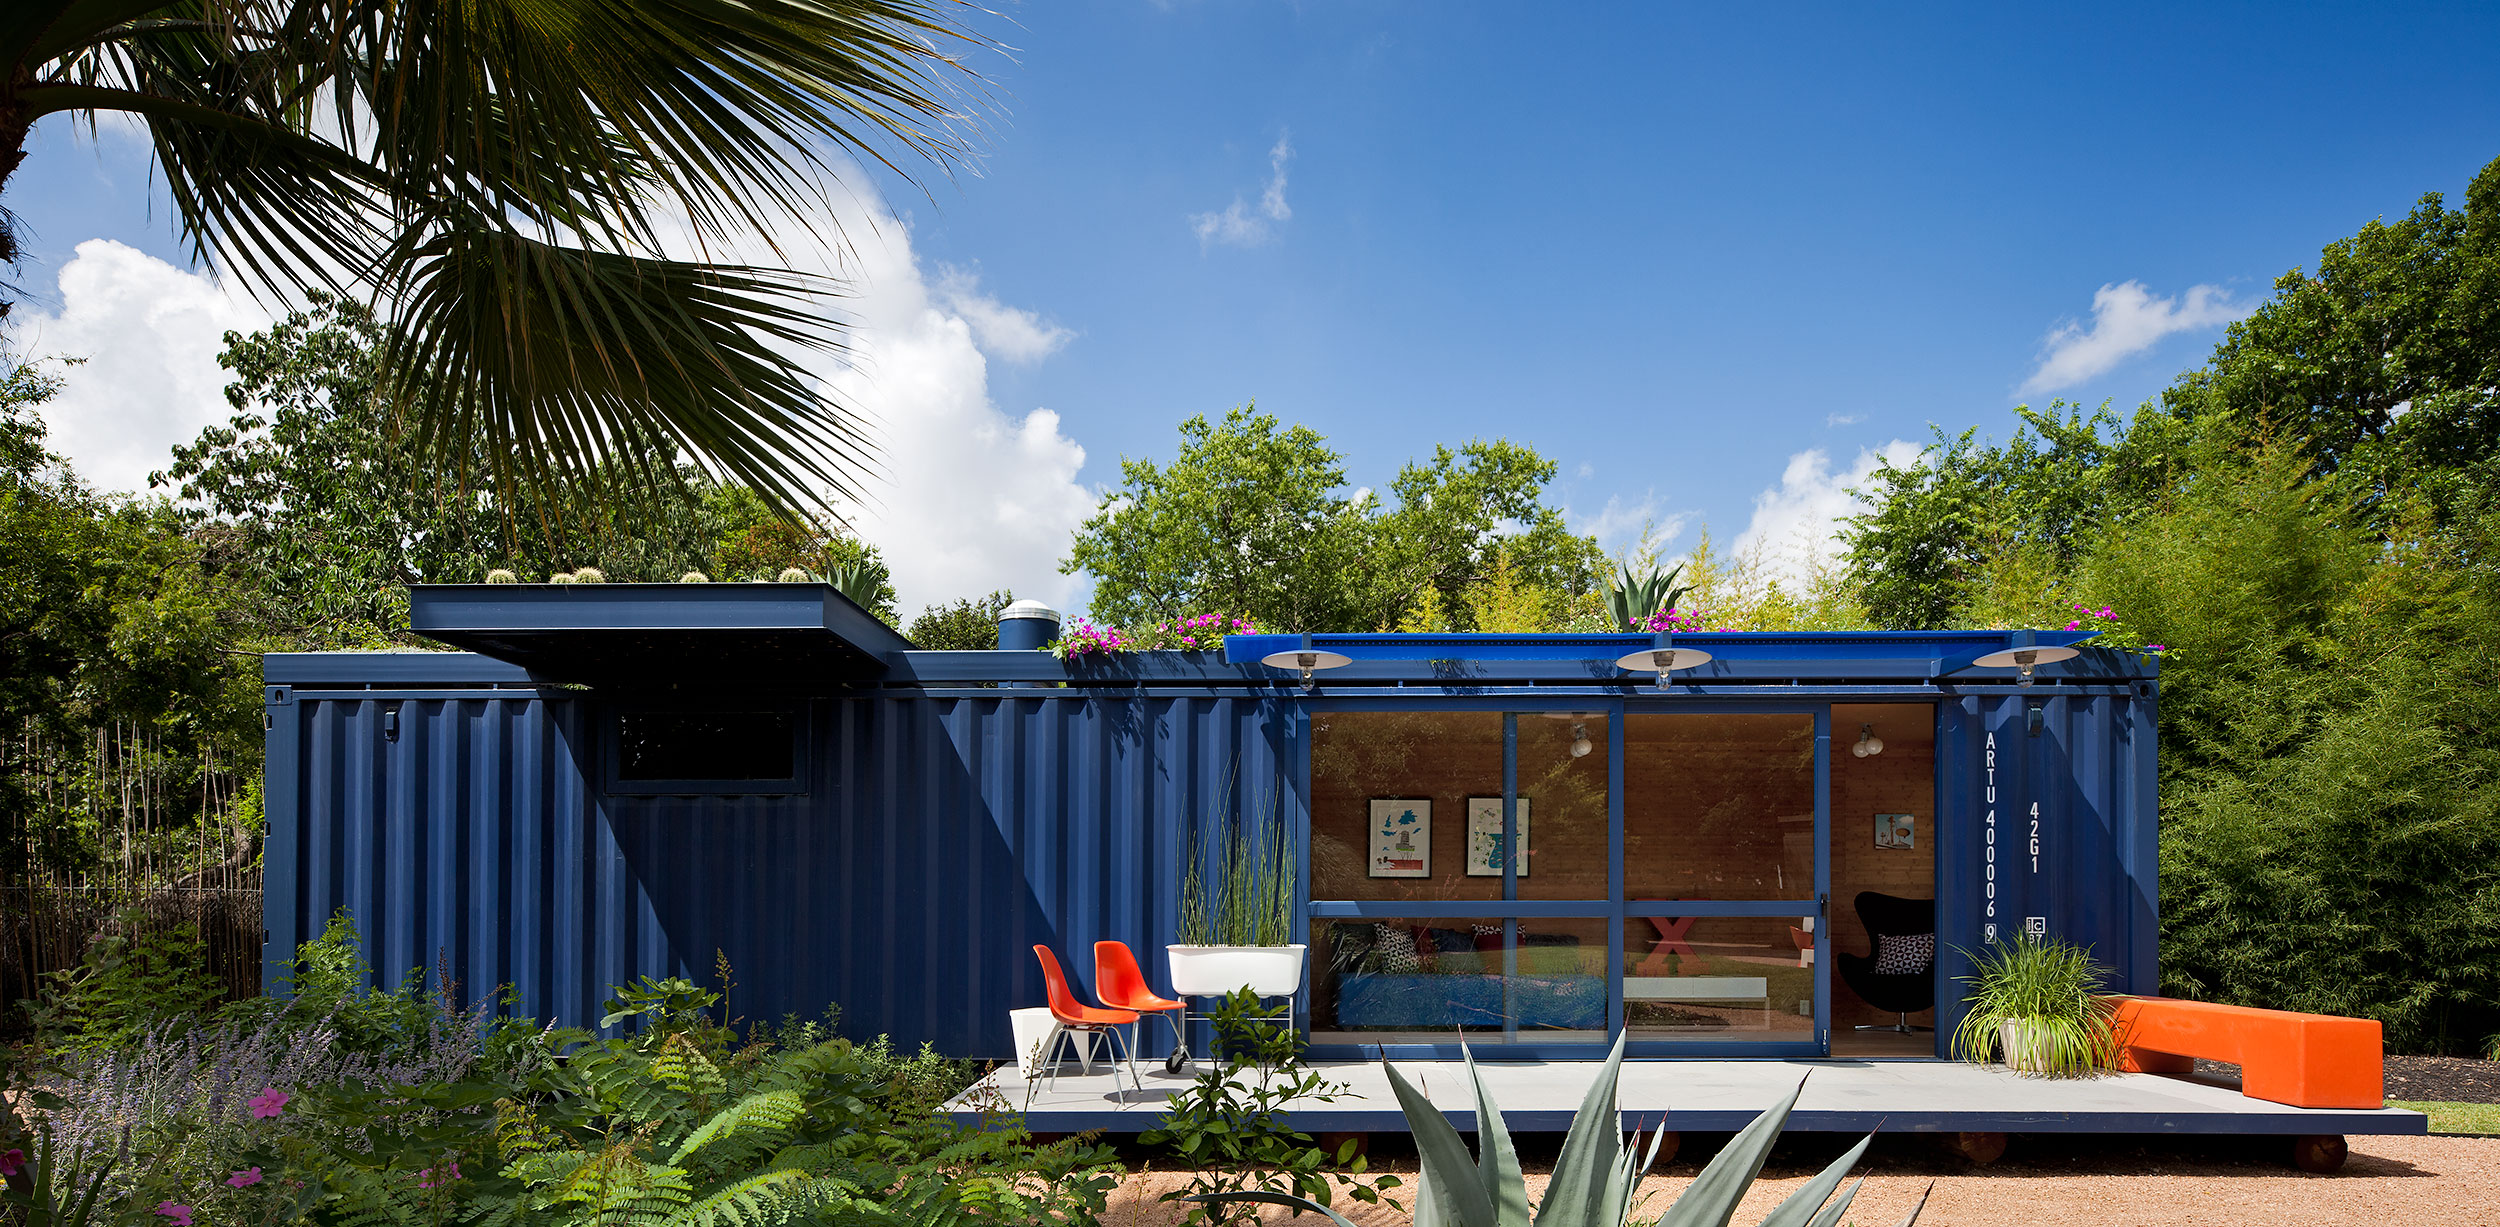 Container Architecture, Modern Design, San Antonio, Texas